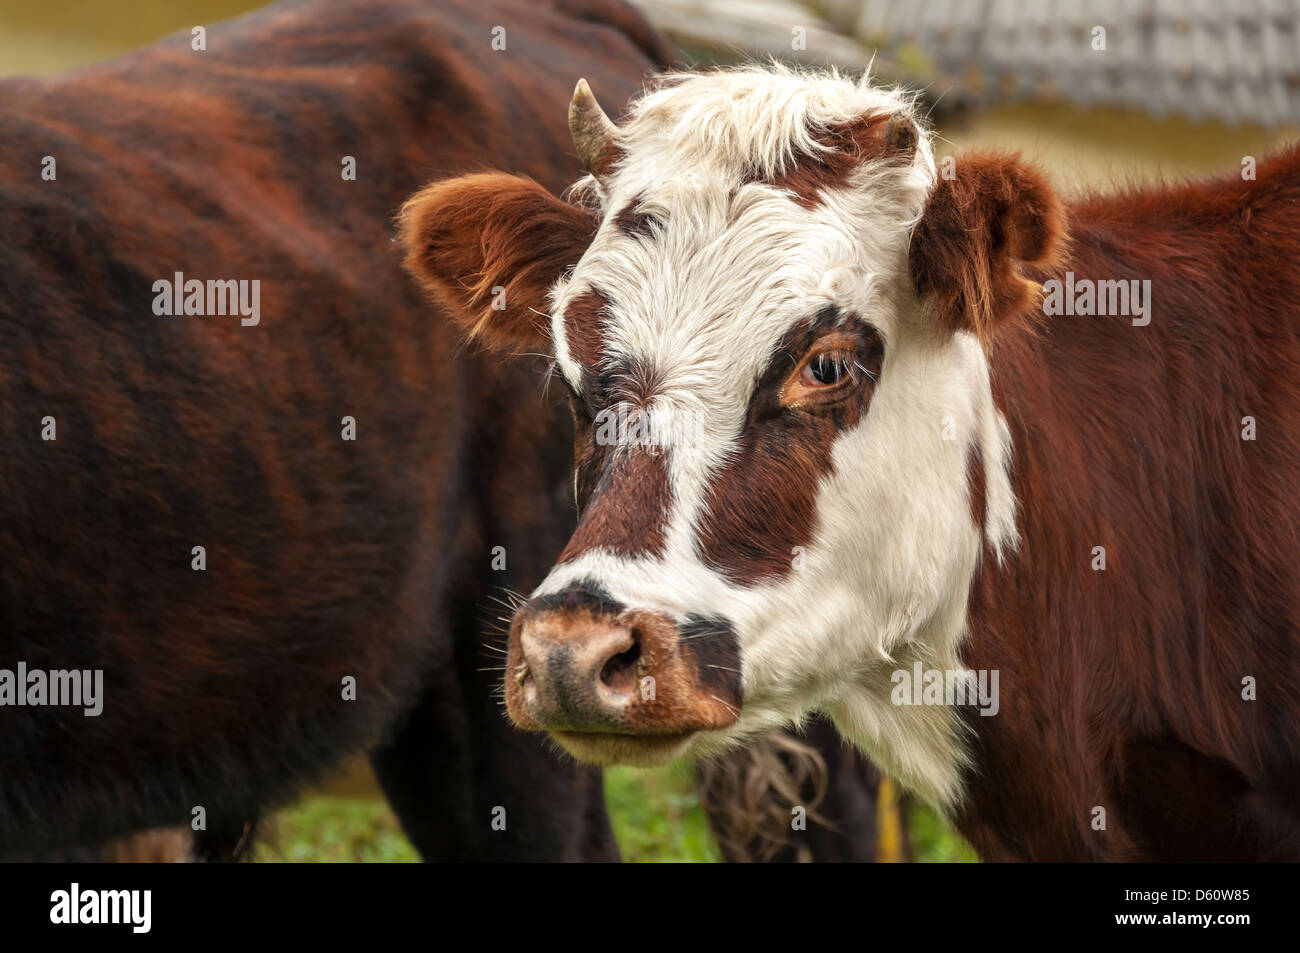 Closeup view of the face of a redish and white cow - Stock Image